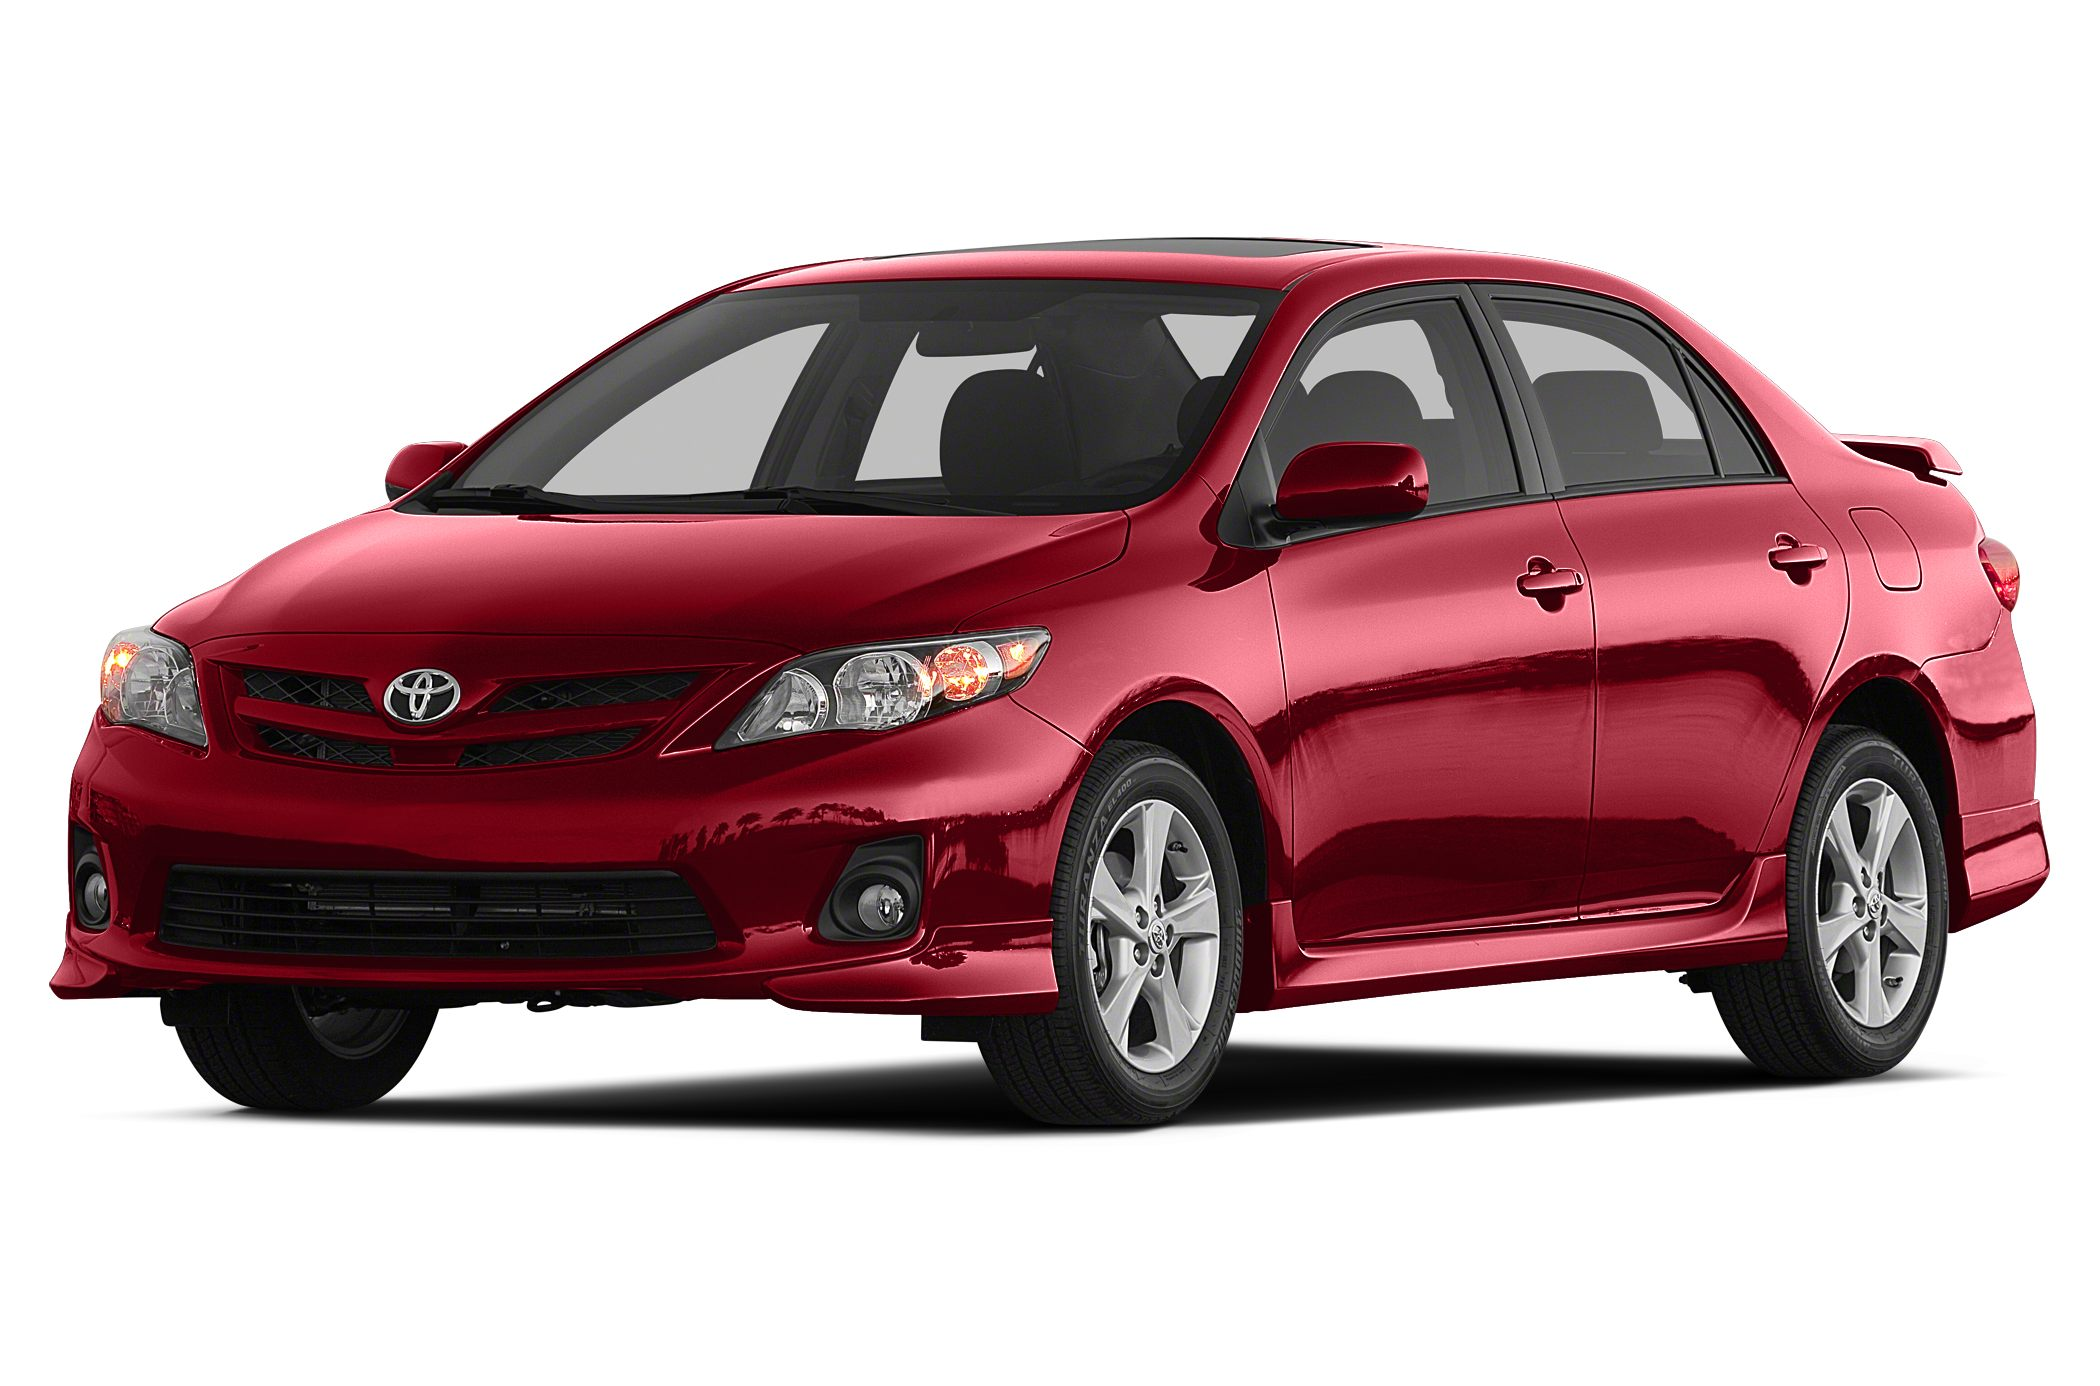 2011 Toyota Corolla S For Internet Pricing and InformationPlease call Teresa Brown  866-387-3798I